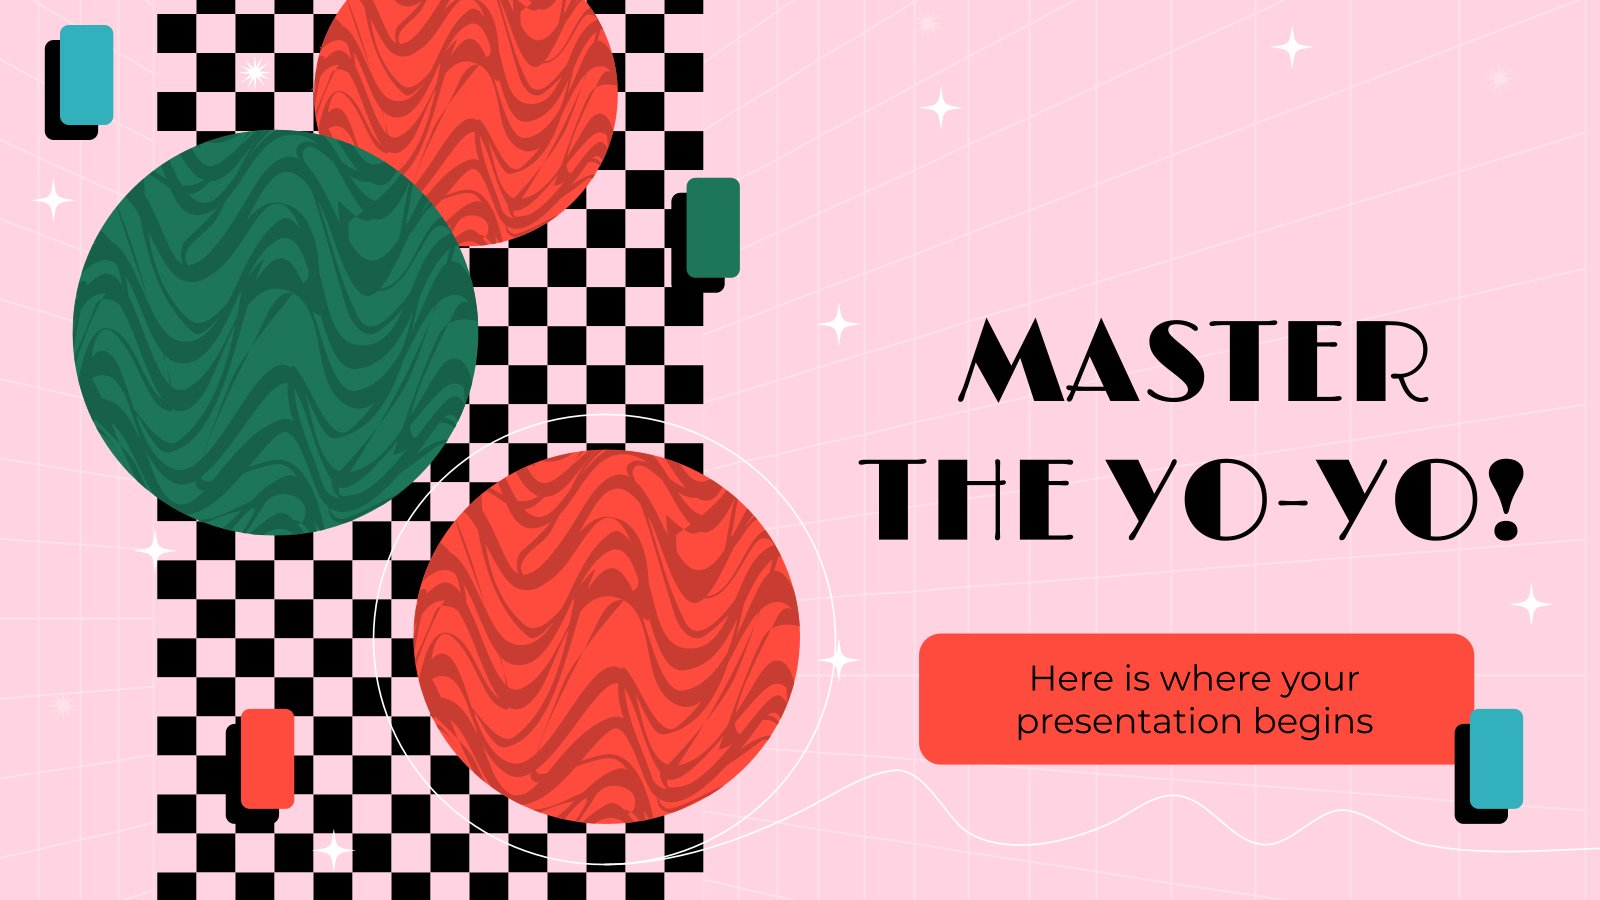 Master the Yo-Yo! presentation template